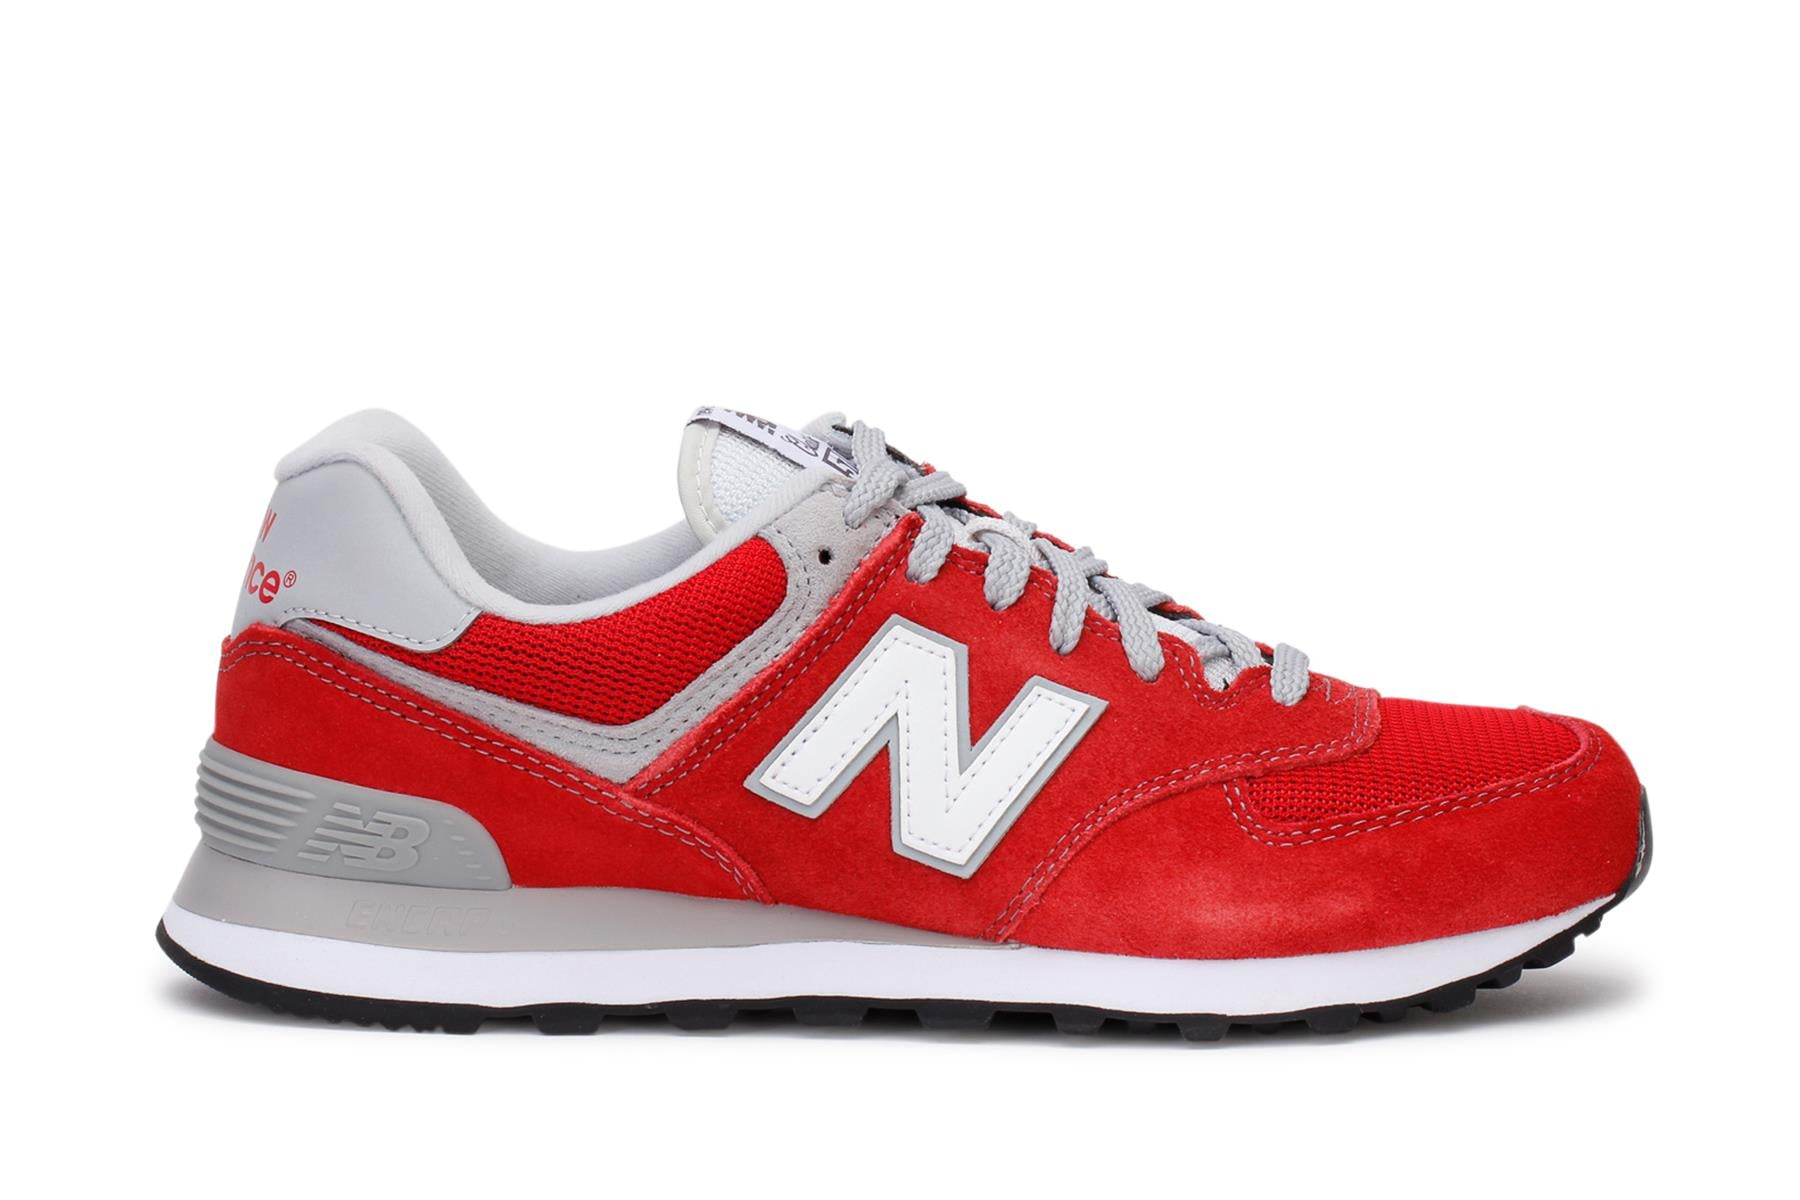 574 New Balance Sneakers